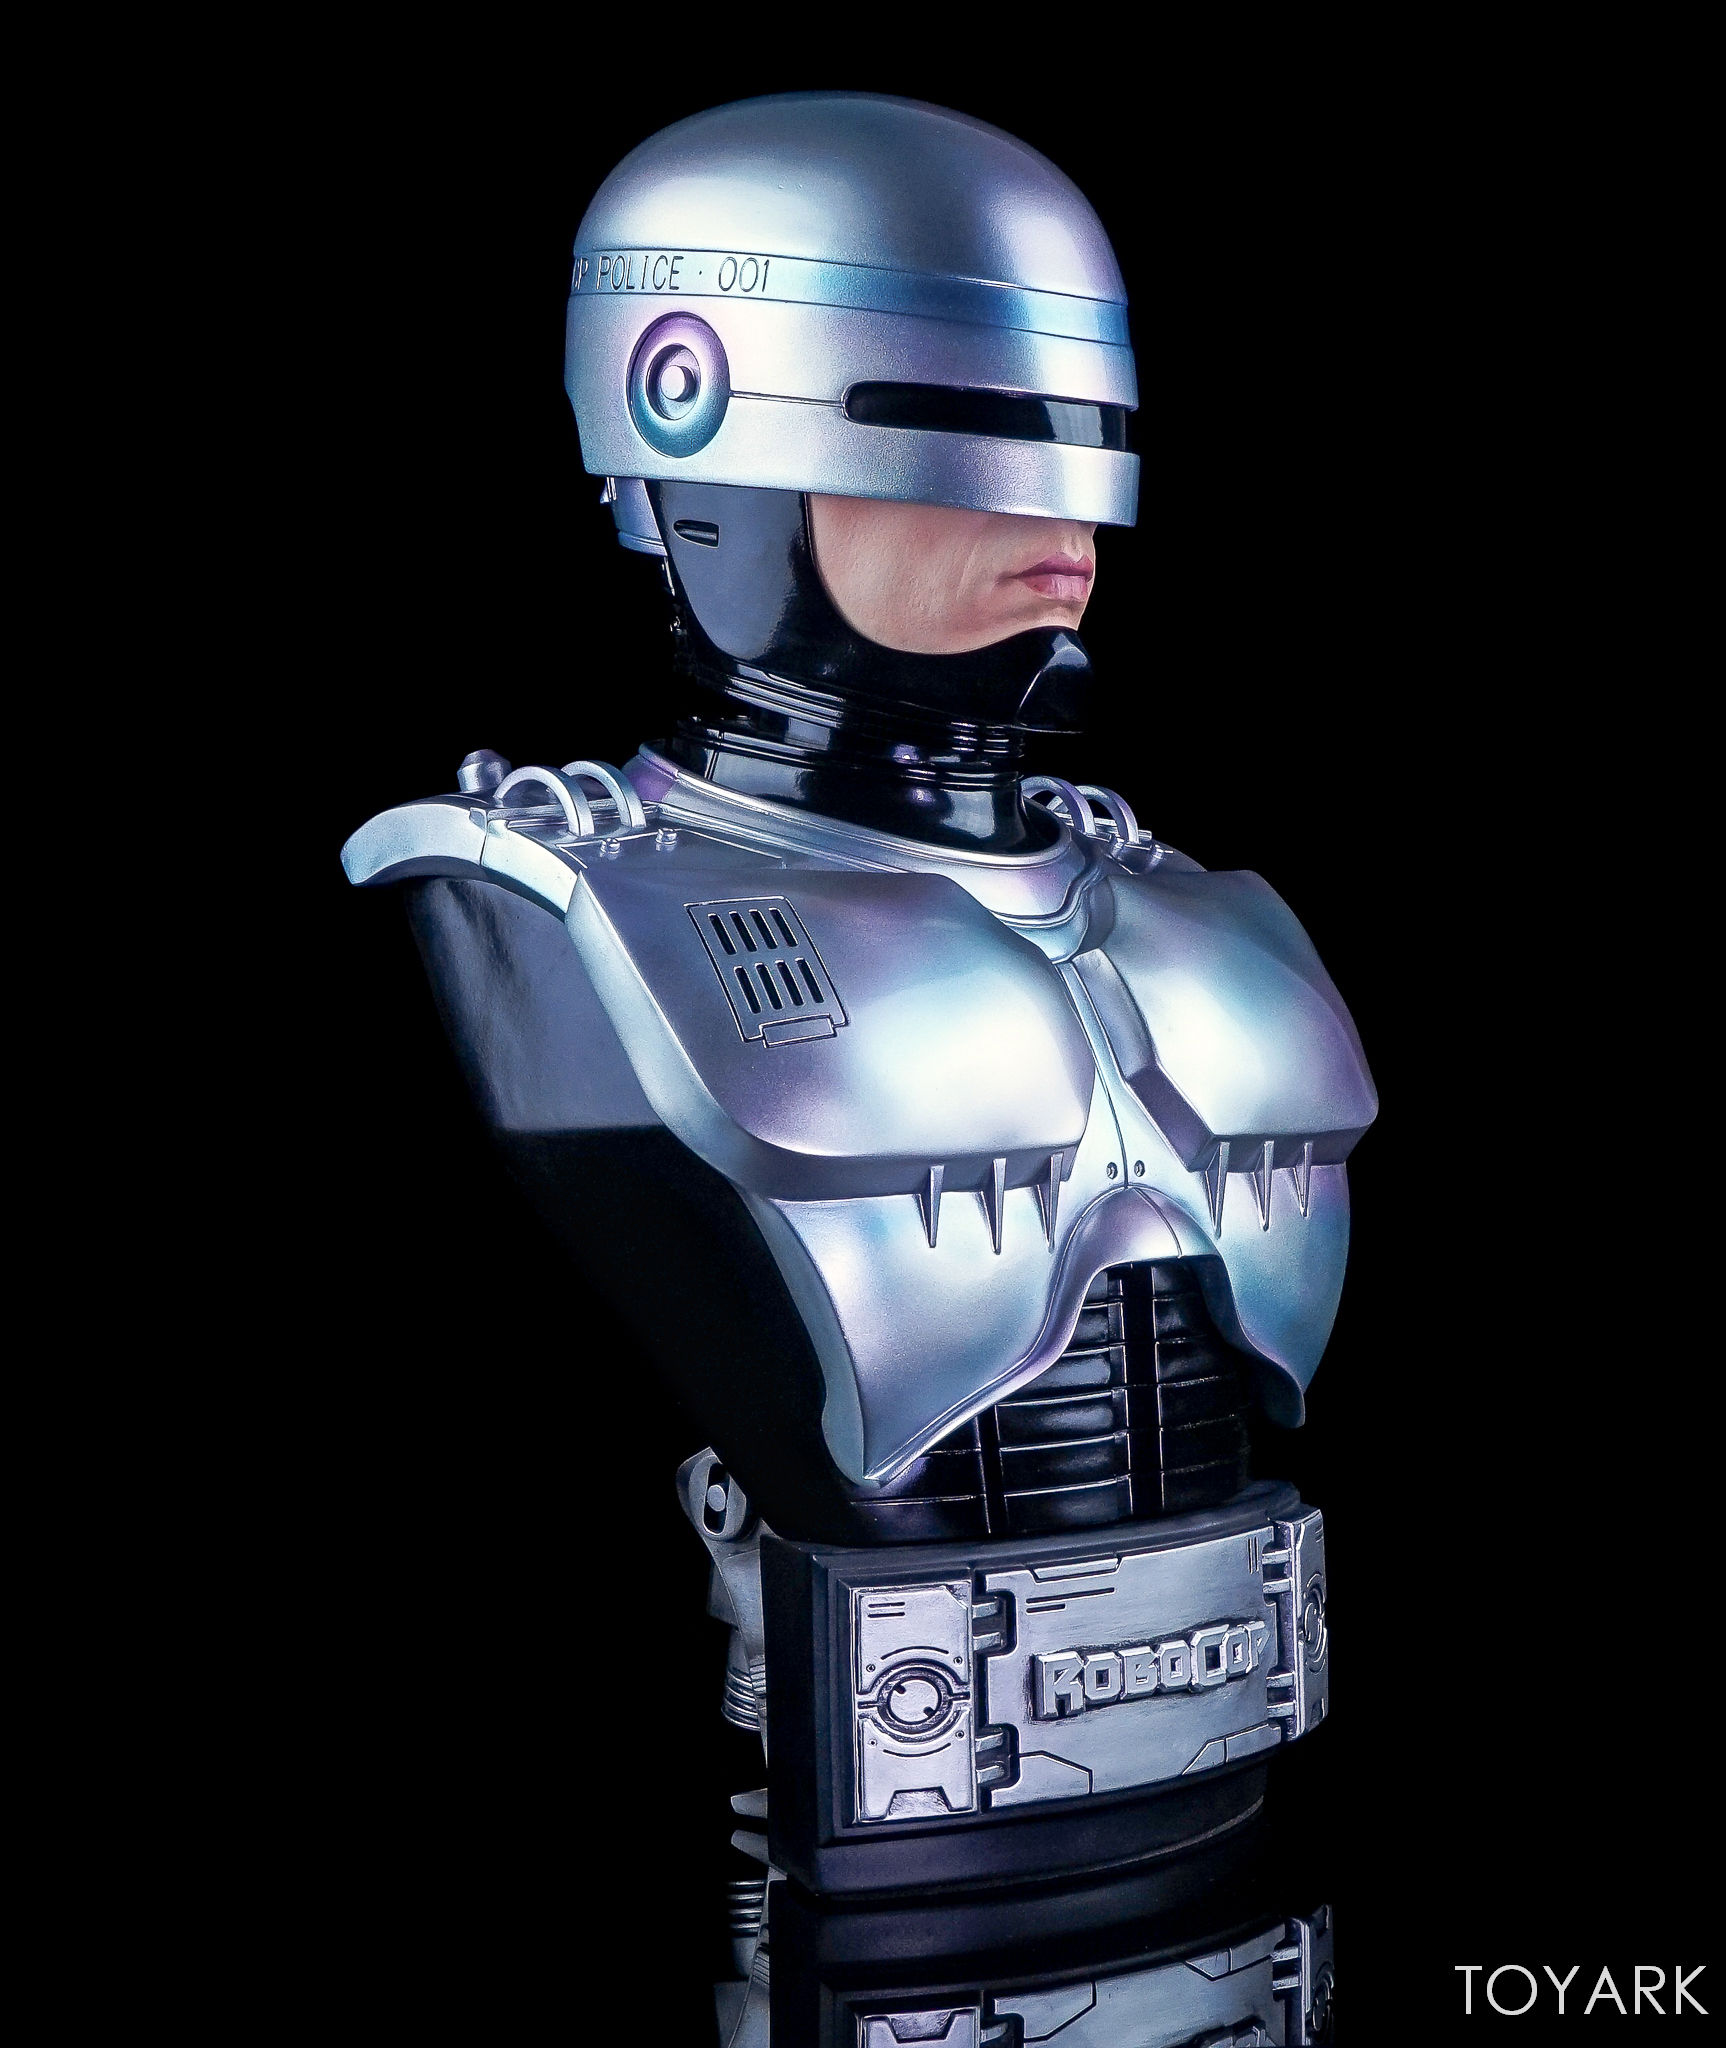 http://news.toyark.com/wp-content/uploads/sites/4/2017/09/Chronicle-Robocop-Half-Scale-Bust-008.jpg